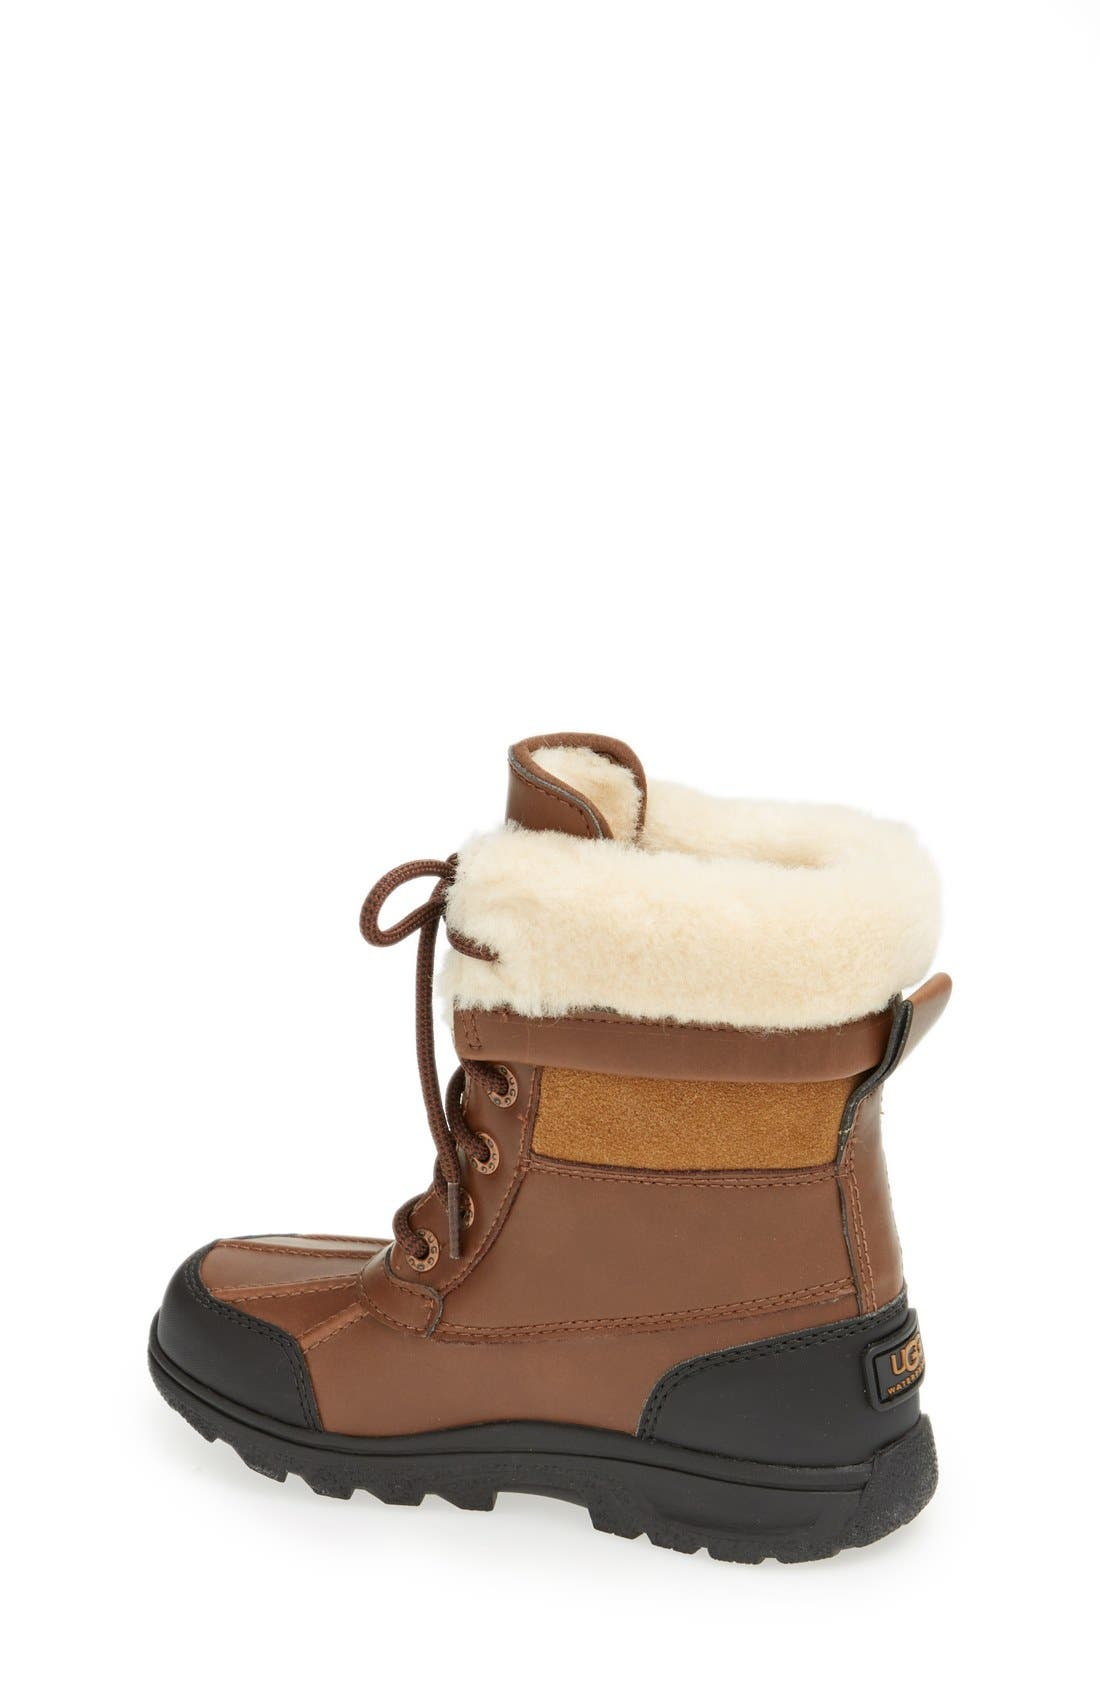 Alternate Image 2  - UGG® 'Butte II' Waterproof Leather Boot (Little Kid & Big Kid)